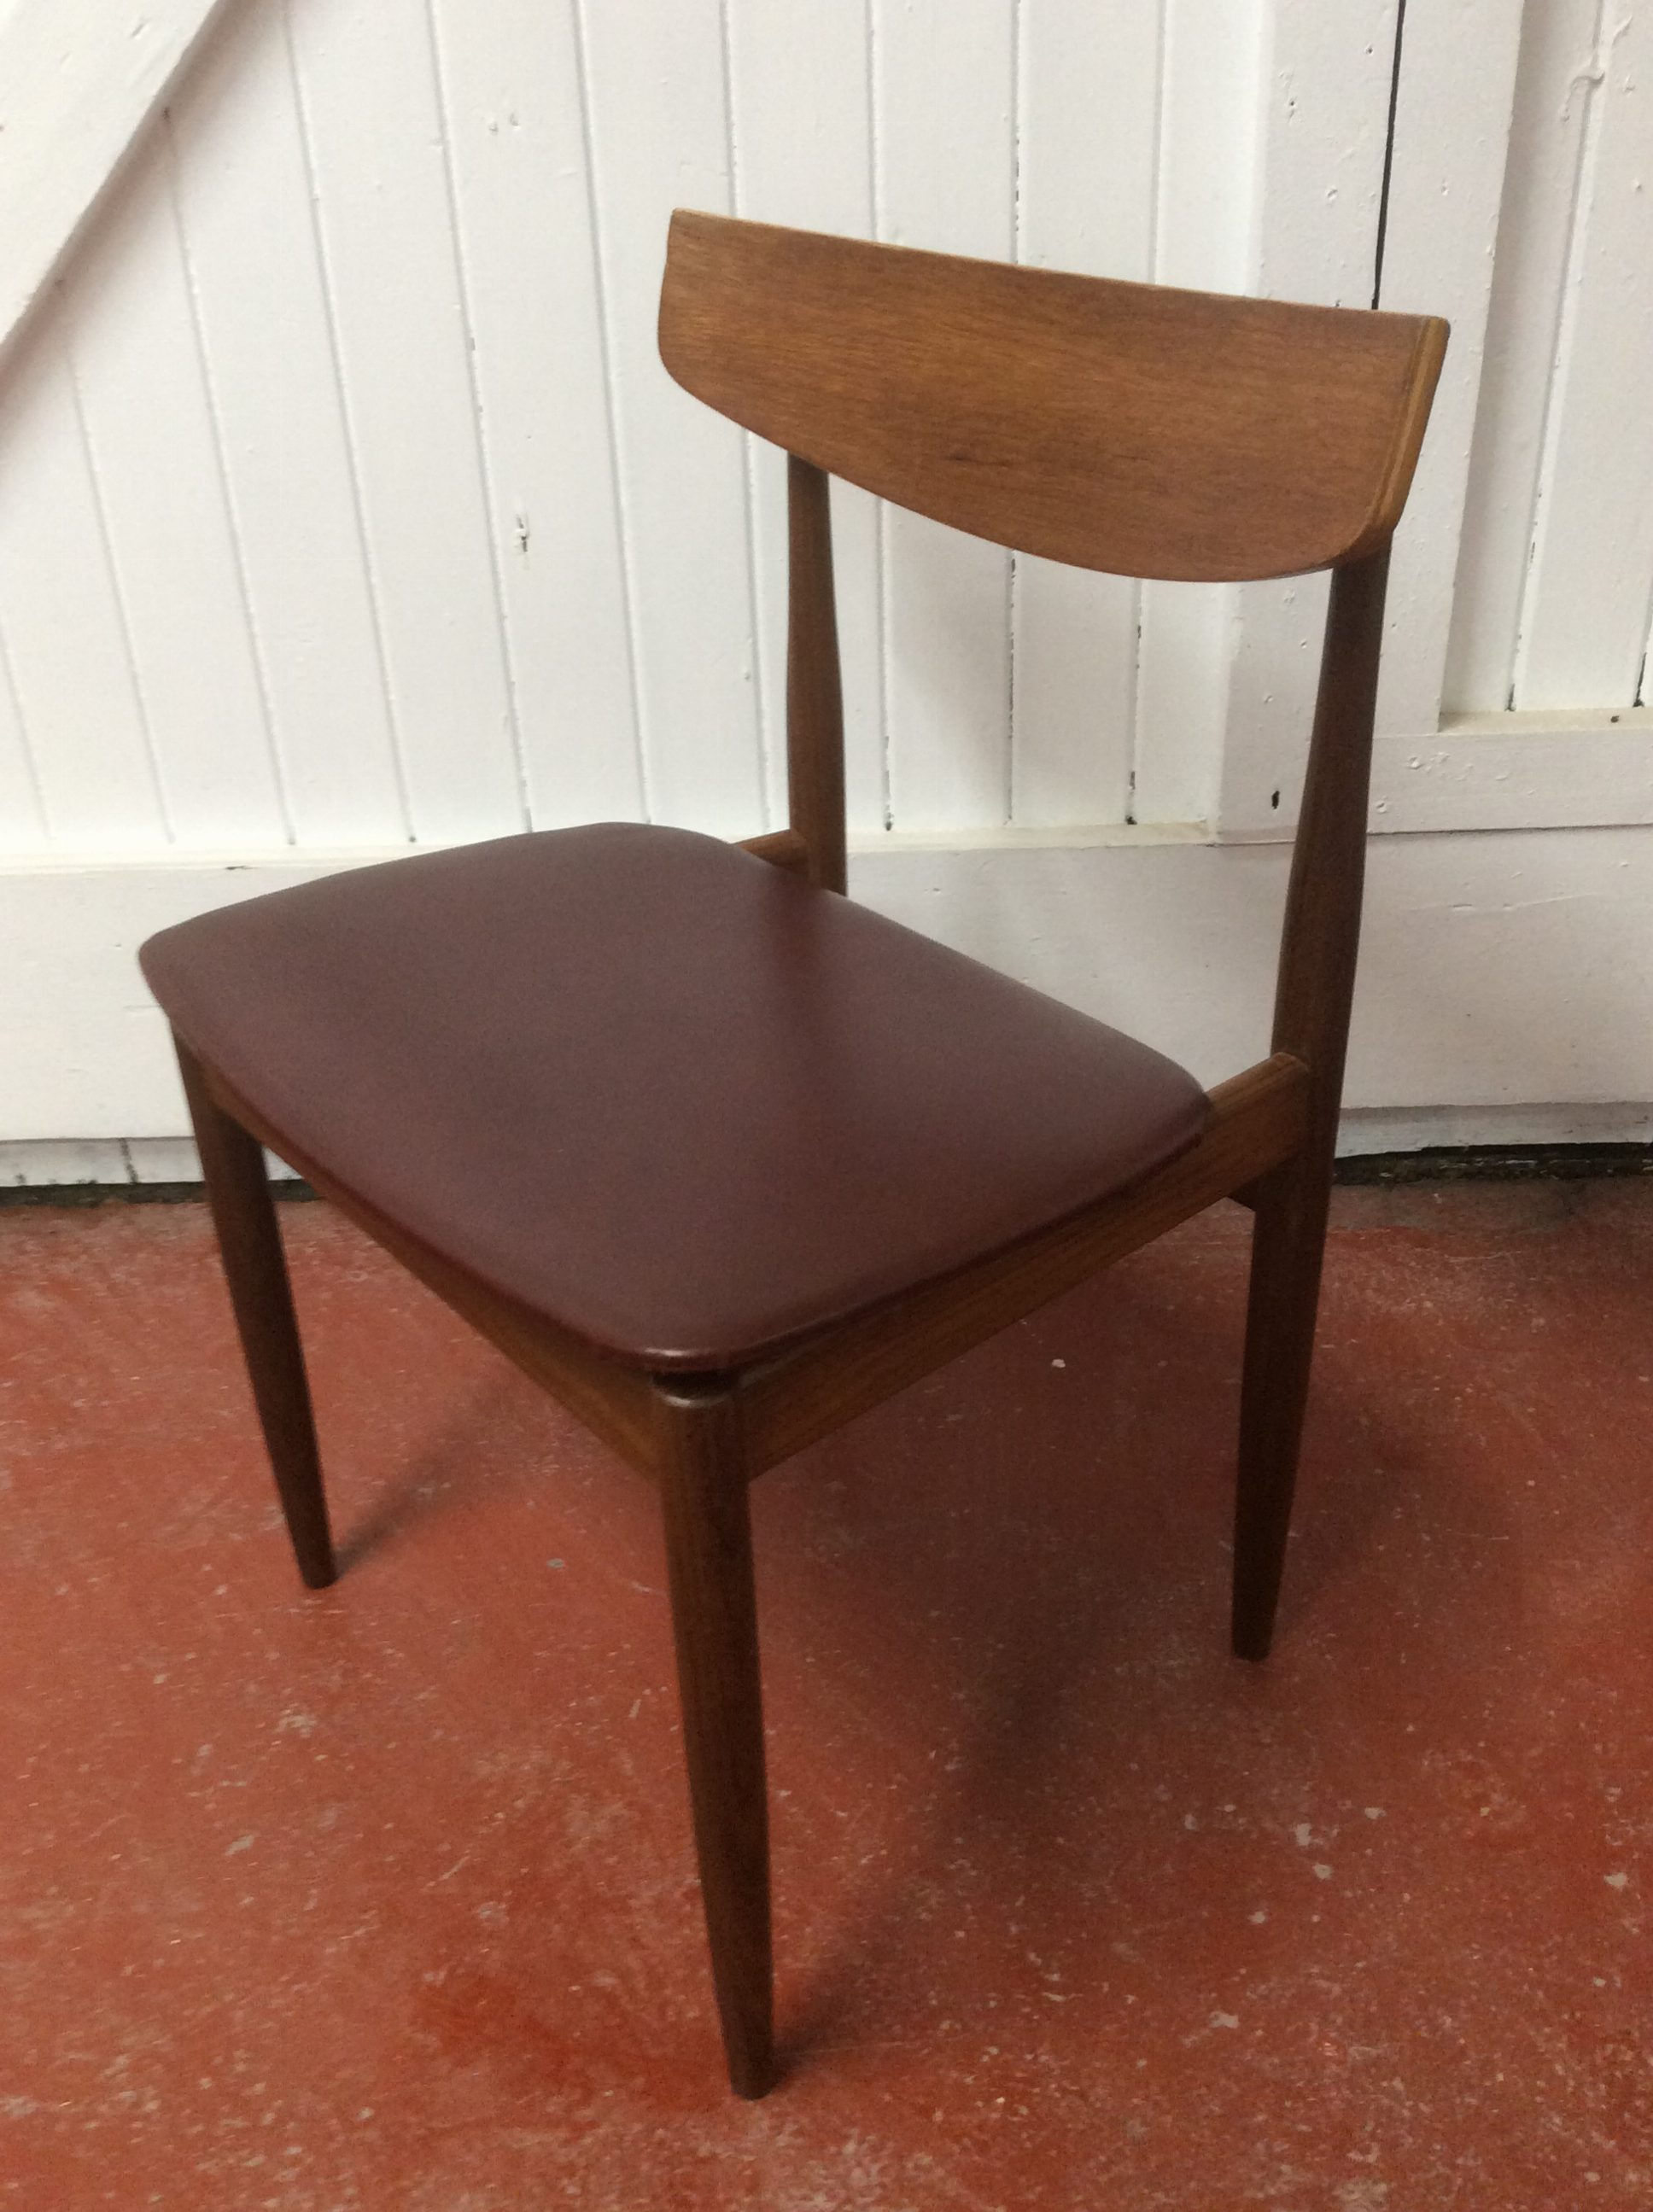 Learn furniture restoration in 1 day in central london for Furniture restoration